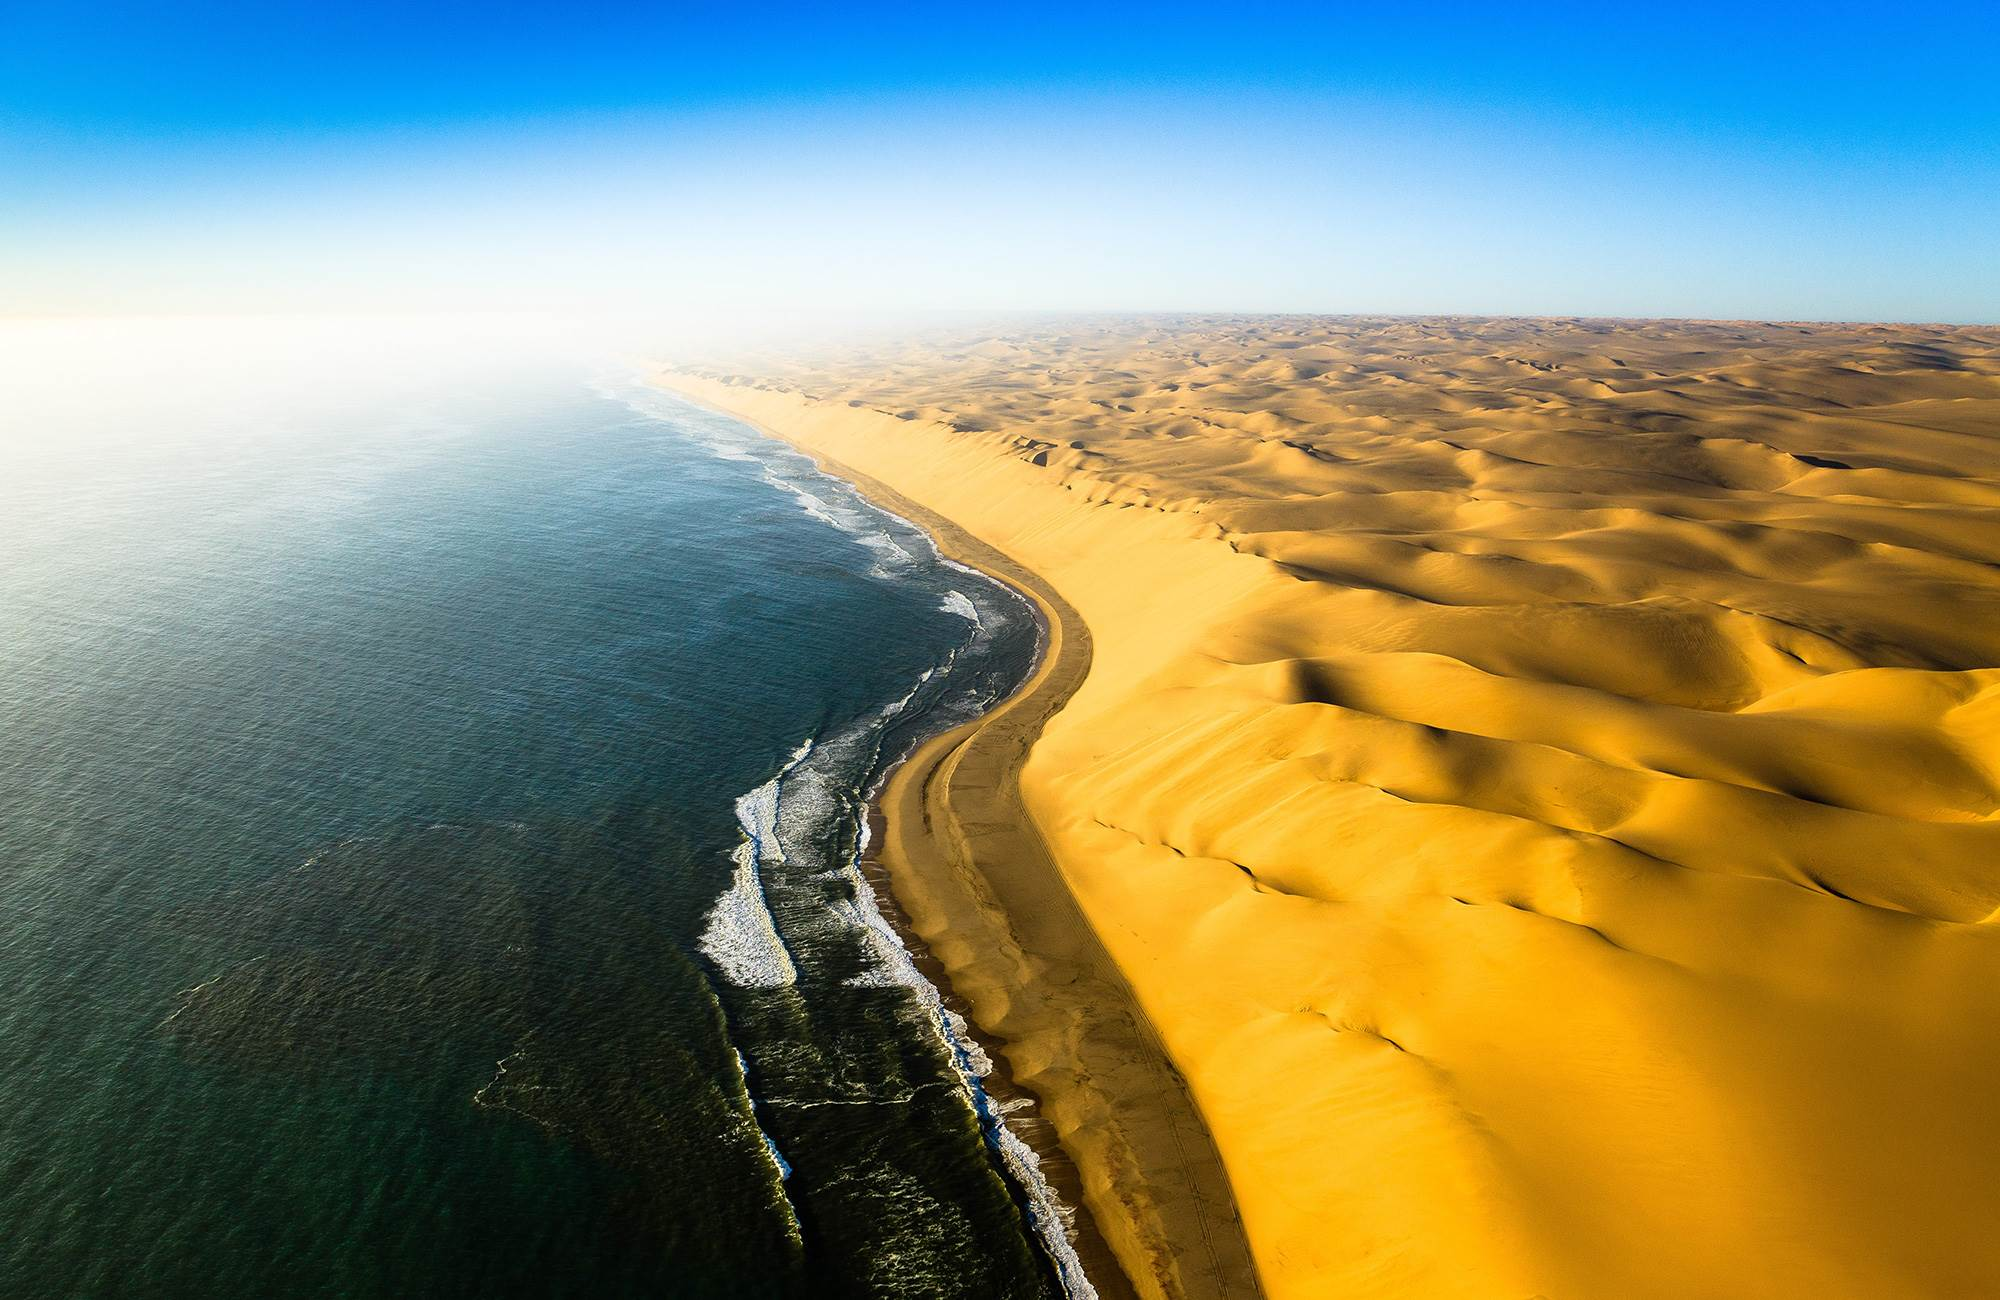 namibia-coast-and-desert-drone-aerial-shot